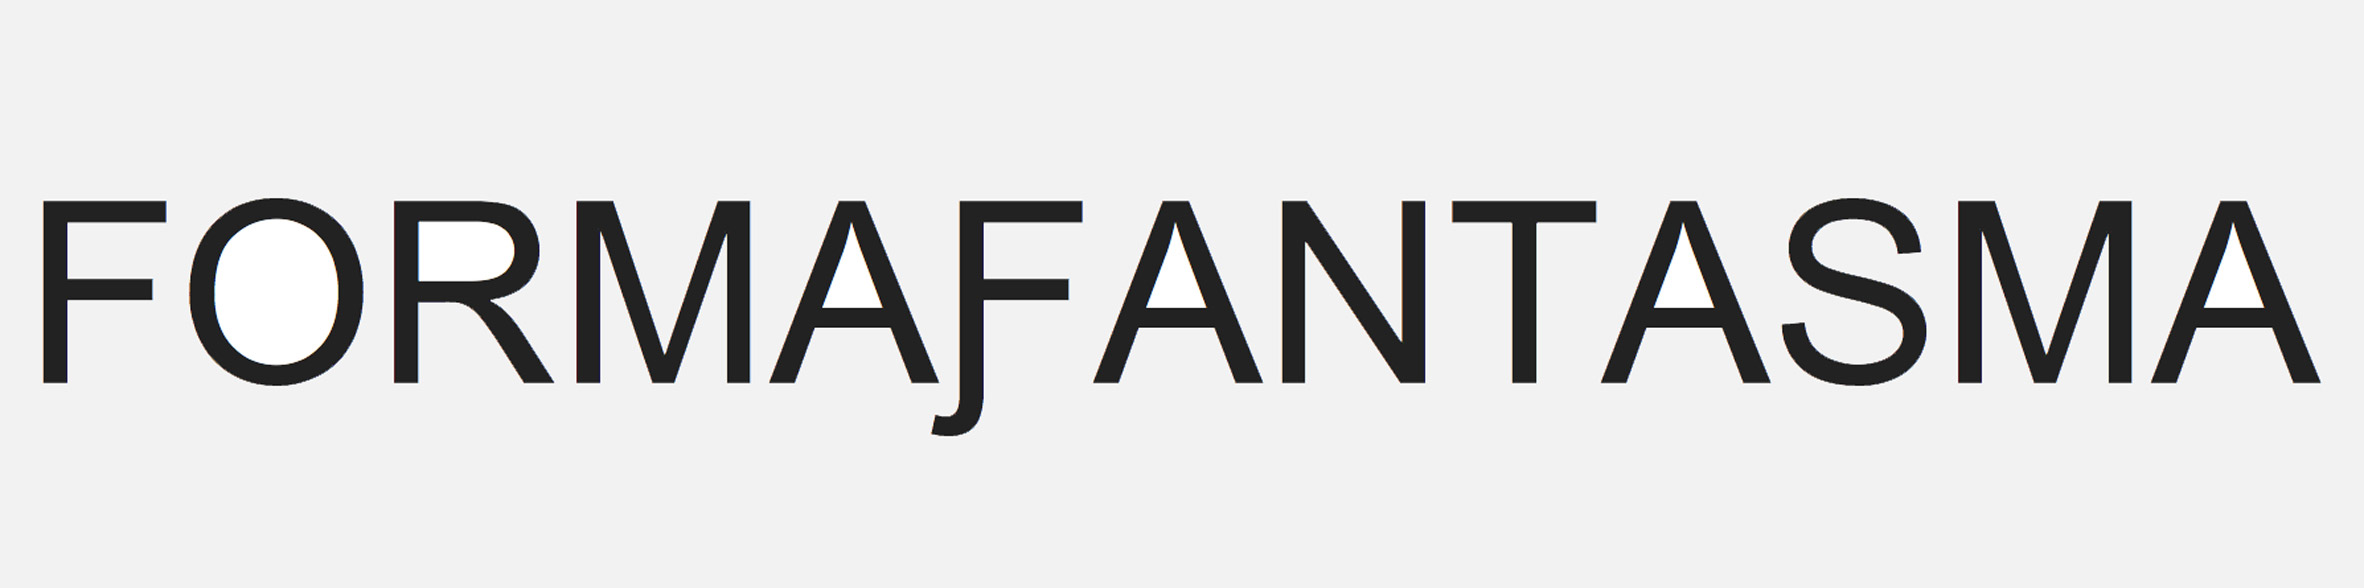 Formafantasma's new logo design